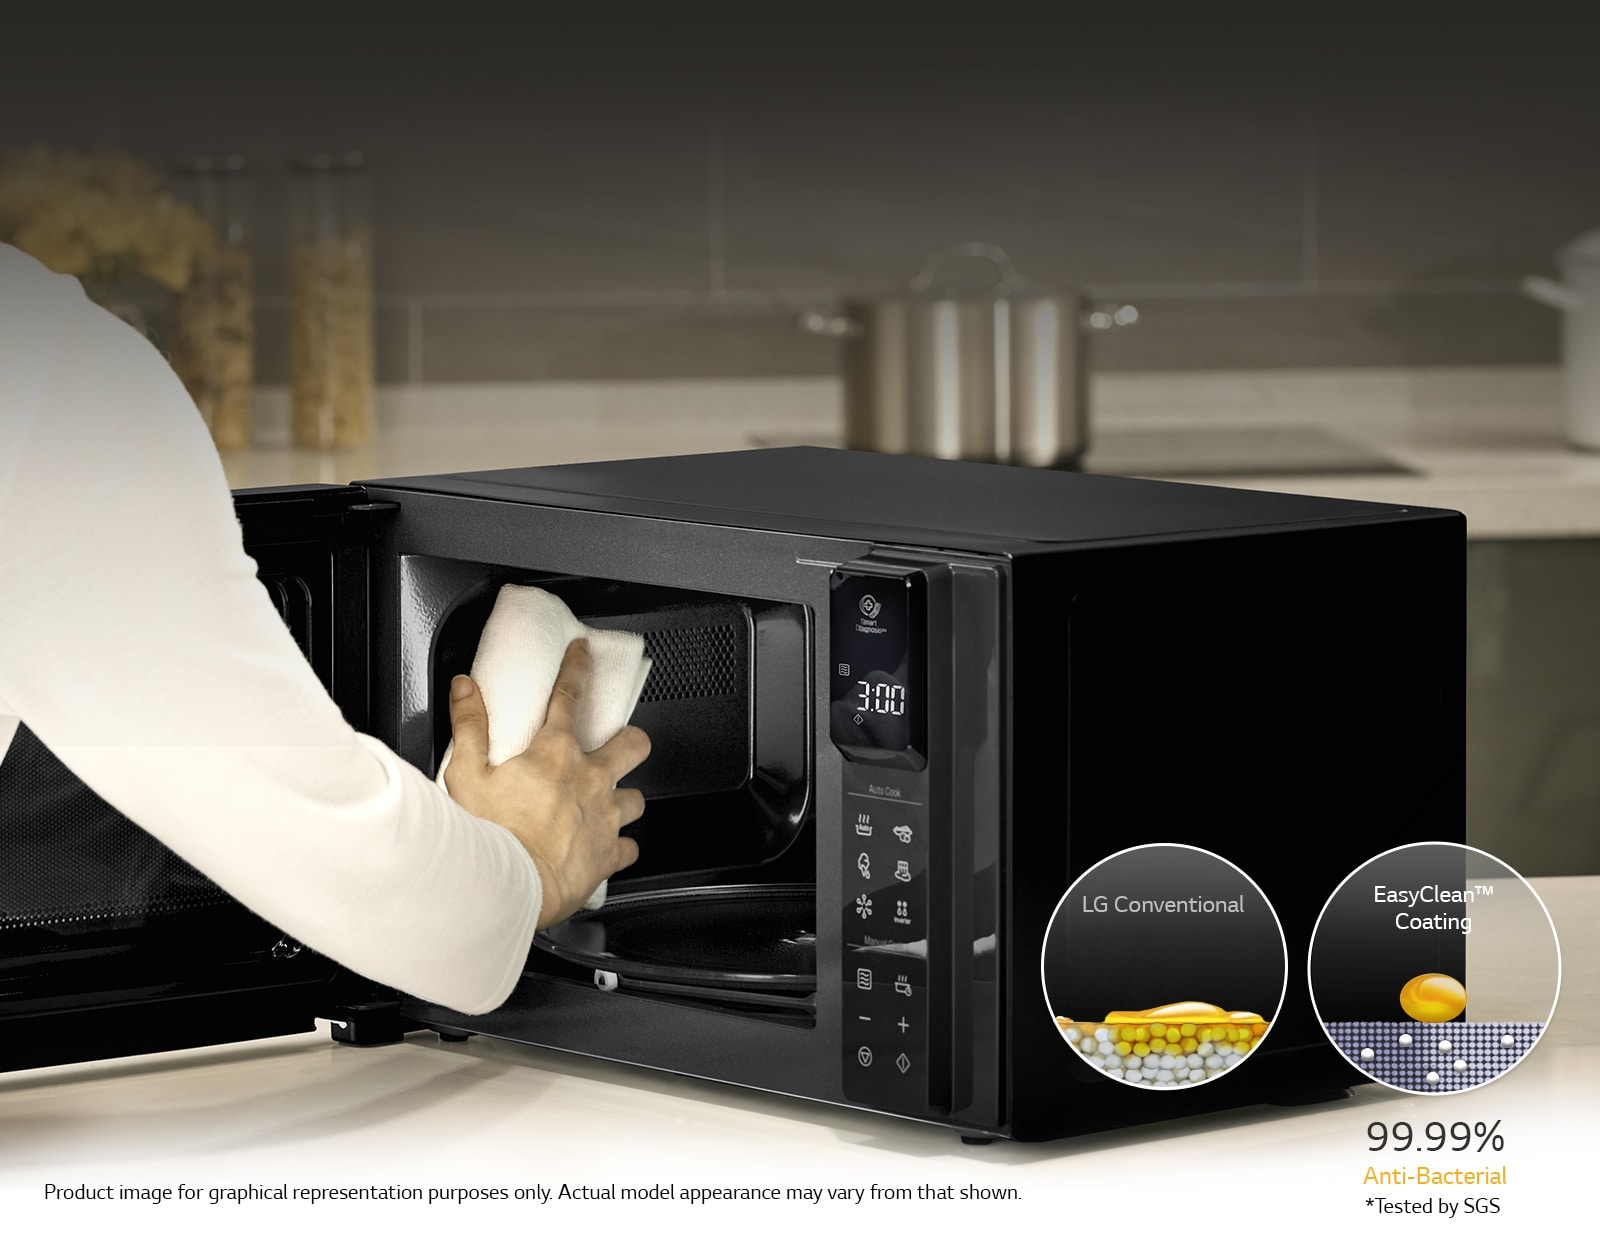 oven counter ovens kitchen amazon dining dp ft countertop microwave white lg cu top com